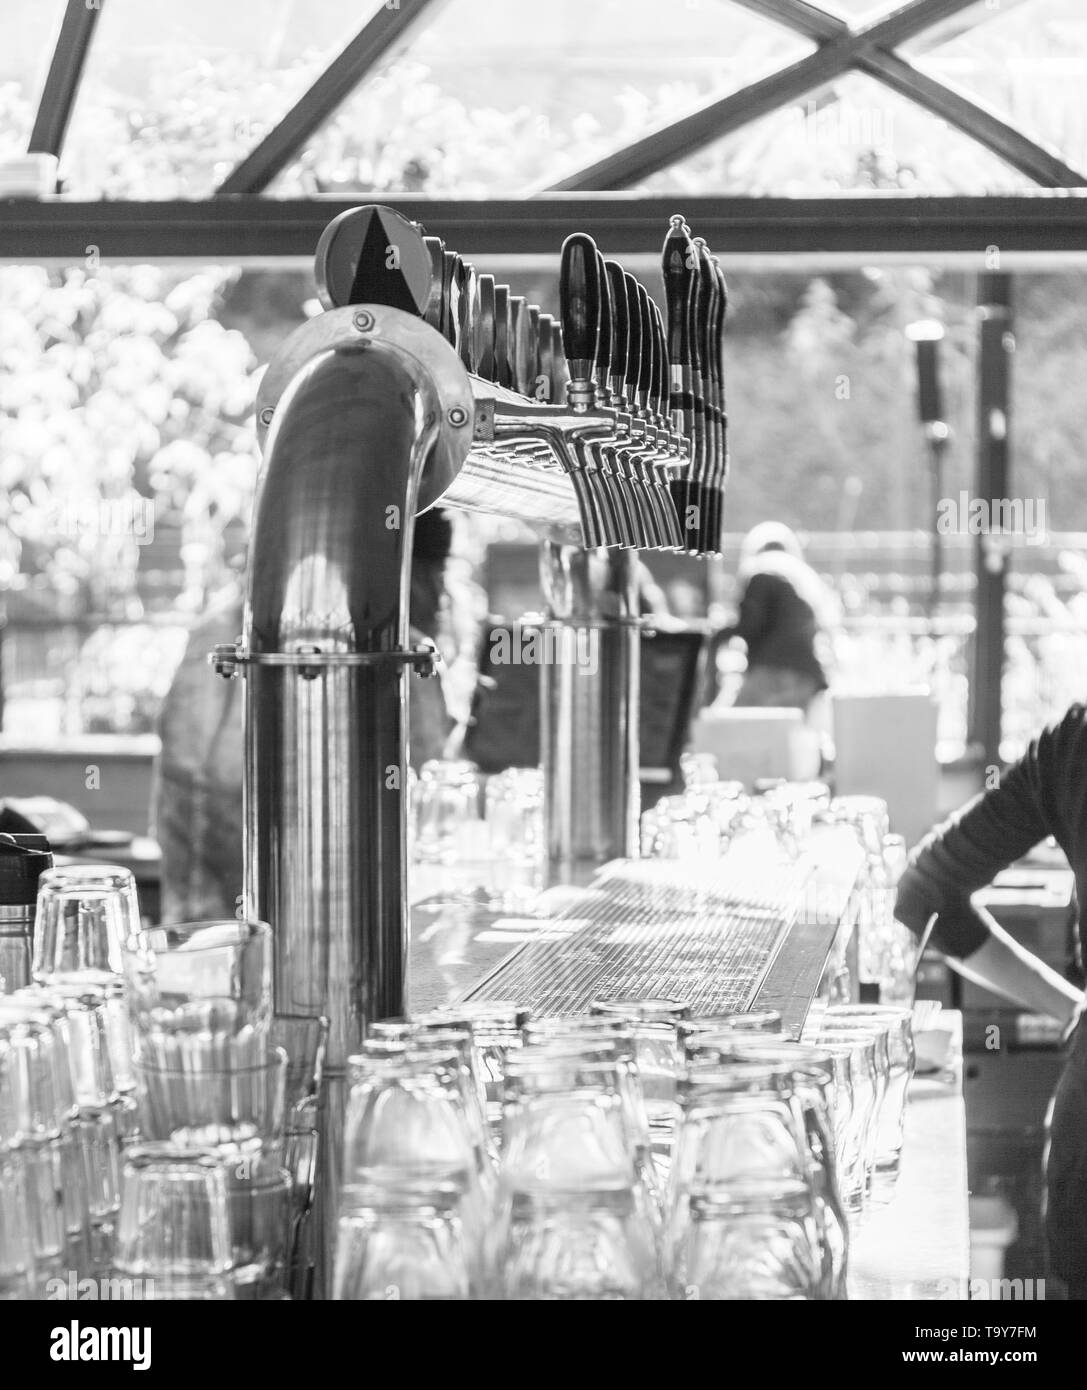 bar counter draft beer during working hours. close up. BW - Stock Image